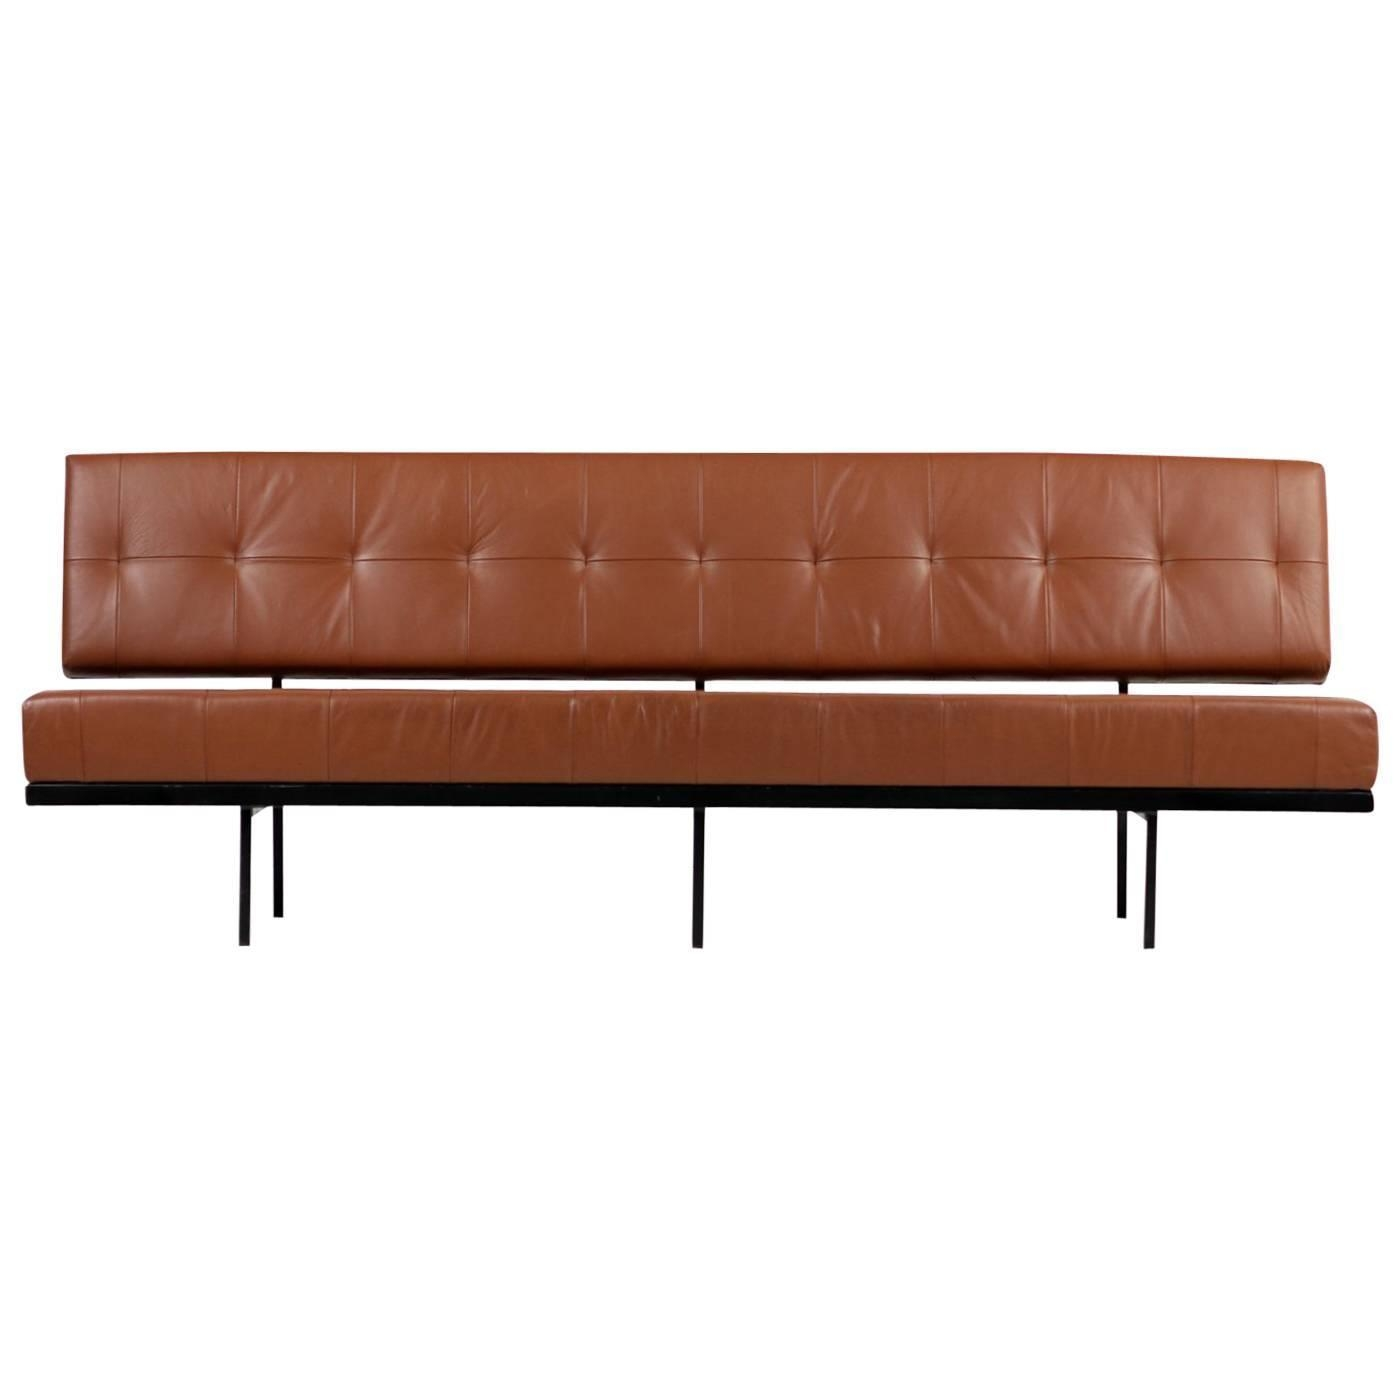 "Early Florence Knoll ""parallel Bar"" Sofa, Circa 1960 At 1Stdibs With Regard To Customized Sofas (Image 13 of 20)"